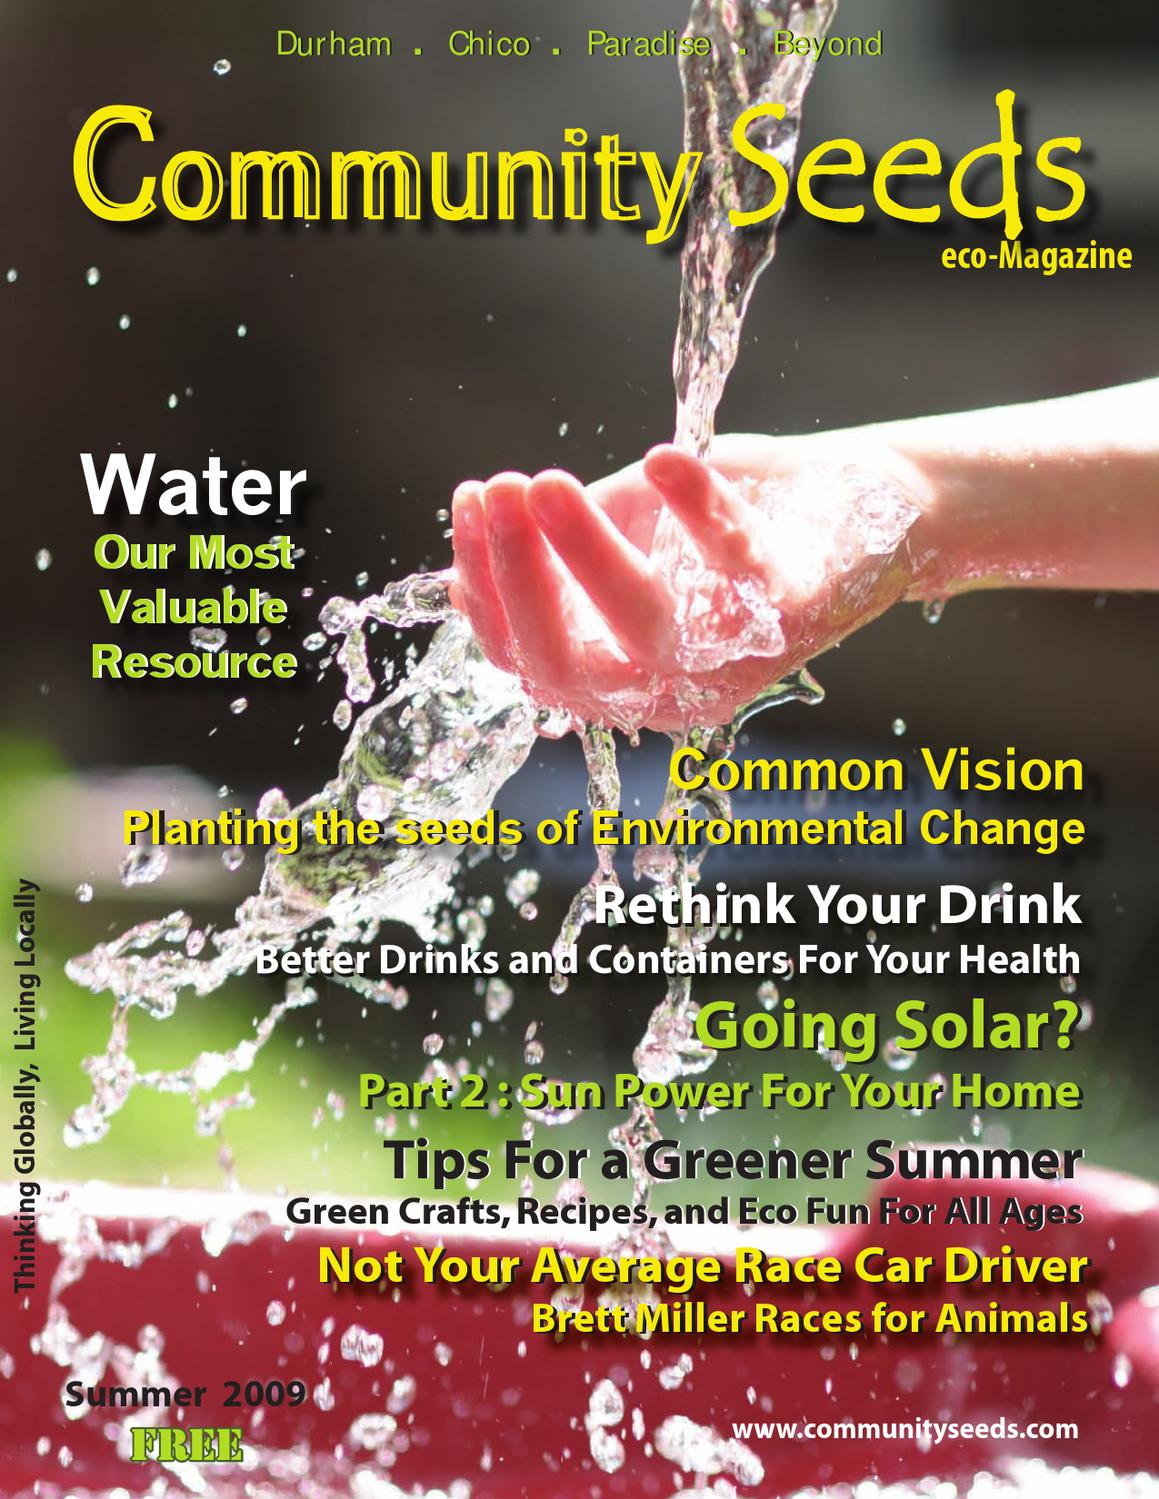 Watergeeks filtered water bottle review the green living guide - Eco Community Seeds Issue Summer 2009 By Eco Community Seeds Magazine Issuu